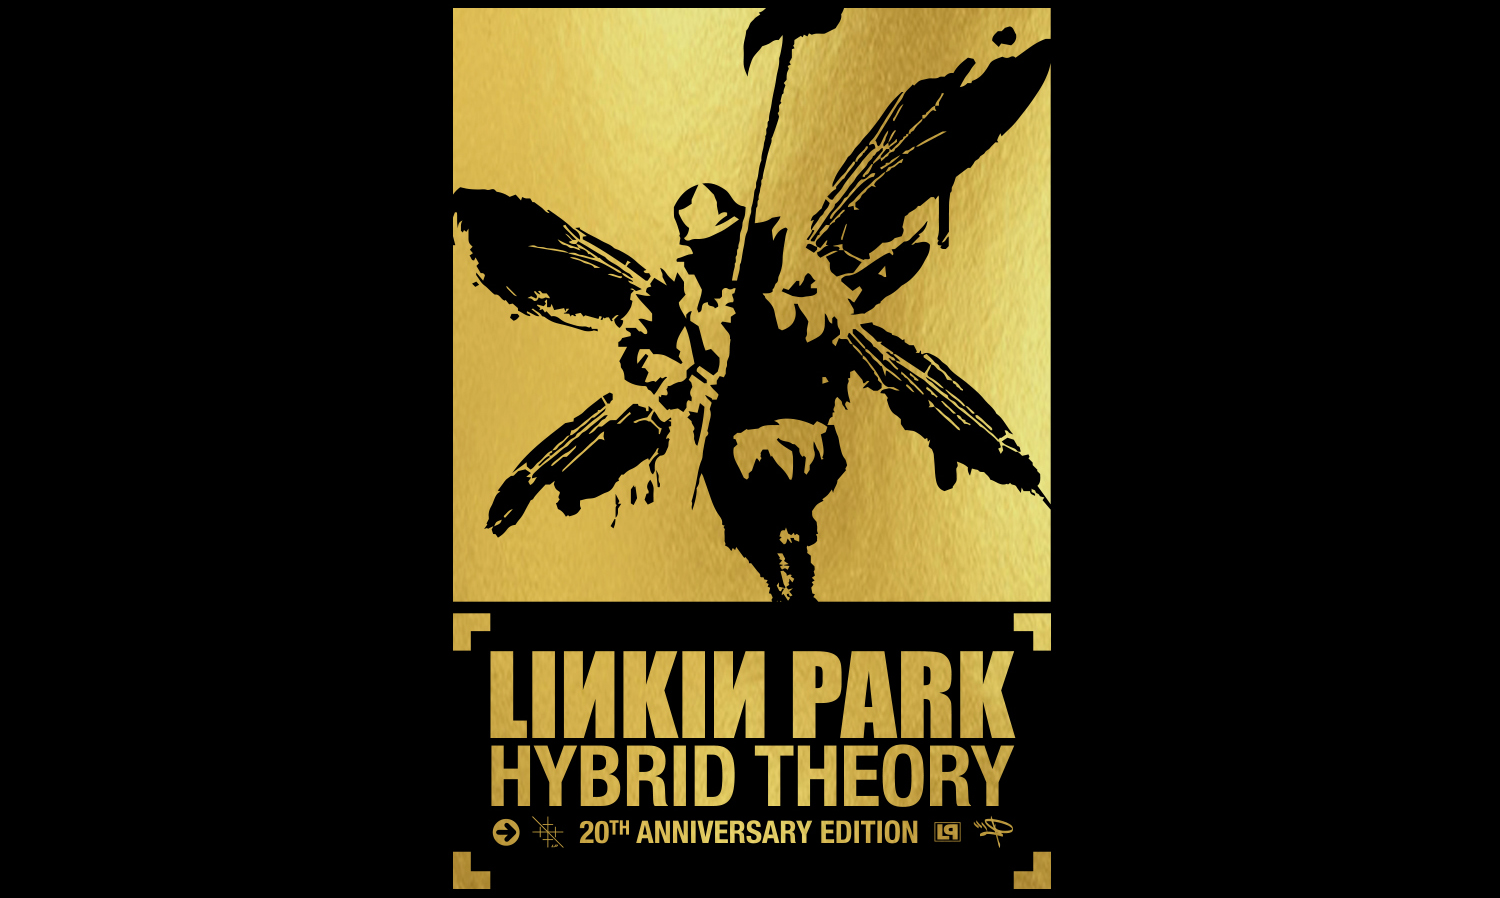 linkin park have announced the details